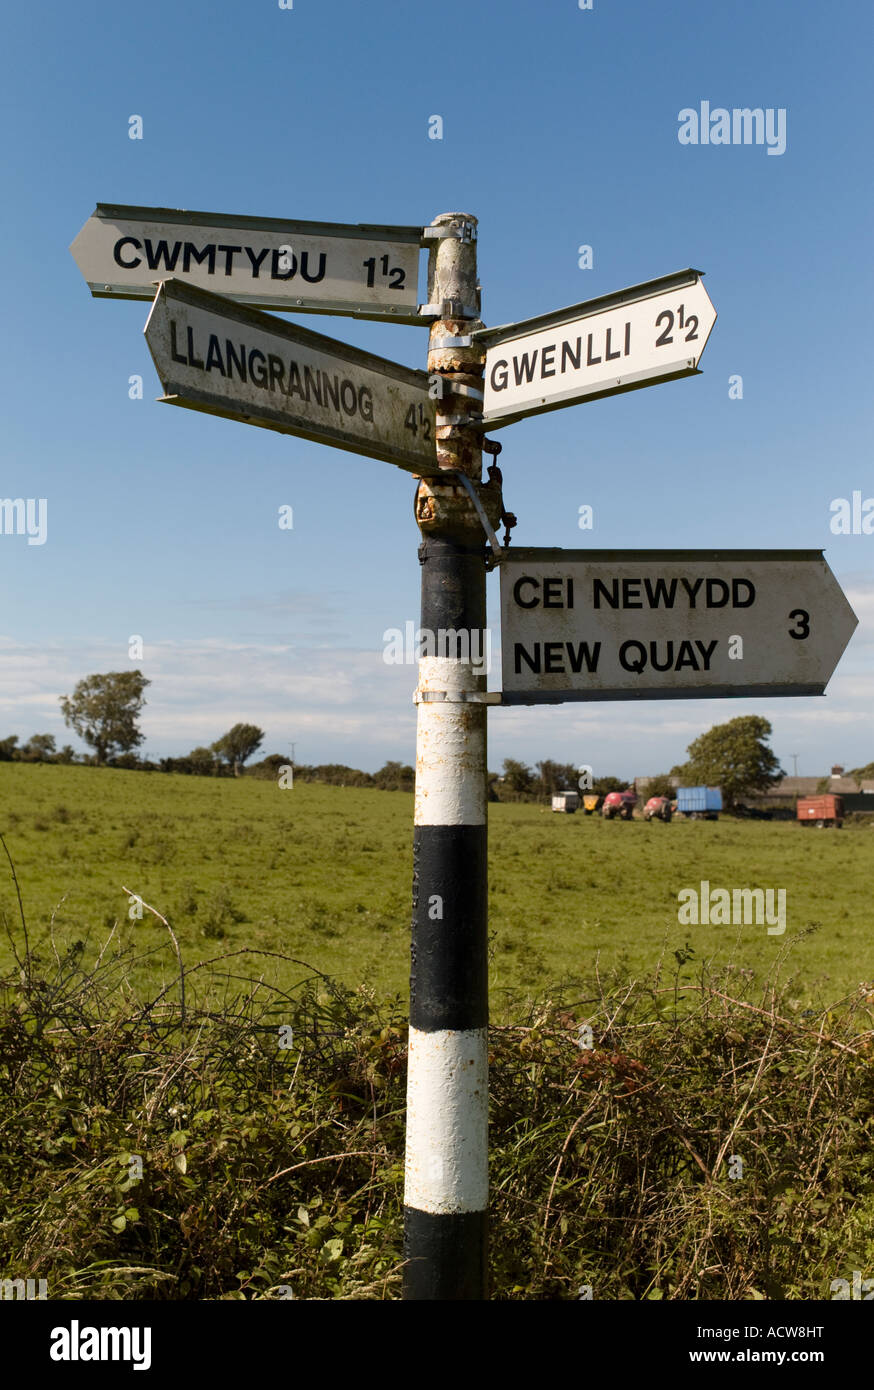 Sign post at remote rural isolated cross roads west wales Cwmtydu Gwenlli Llangrannog Cei Newydd New Quay, UK - Stock Image